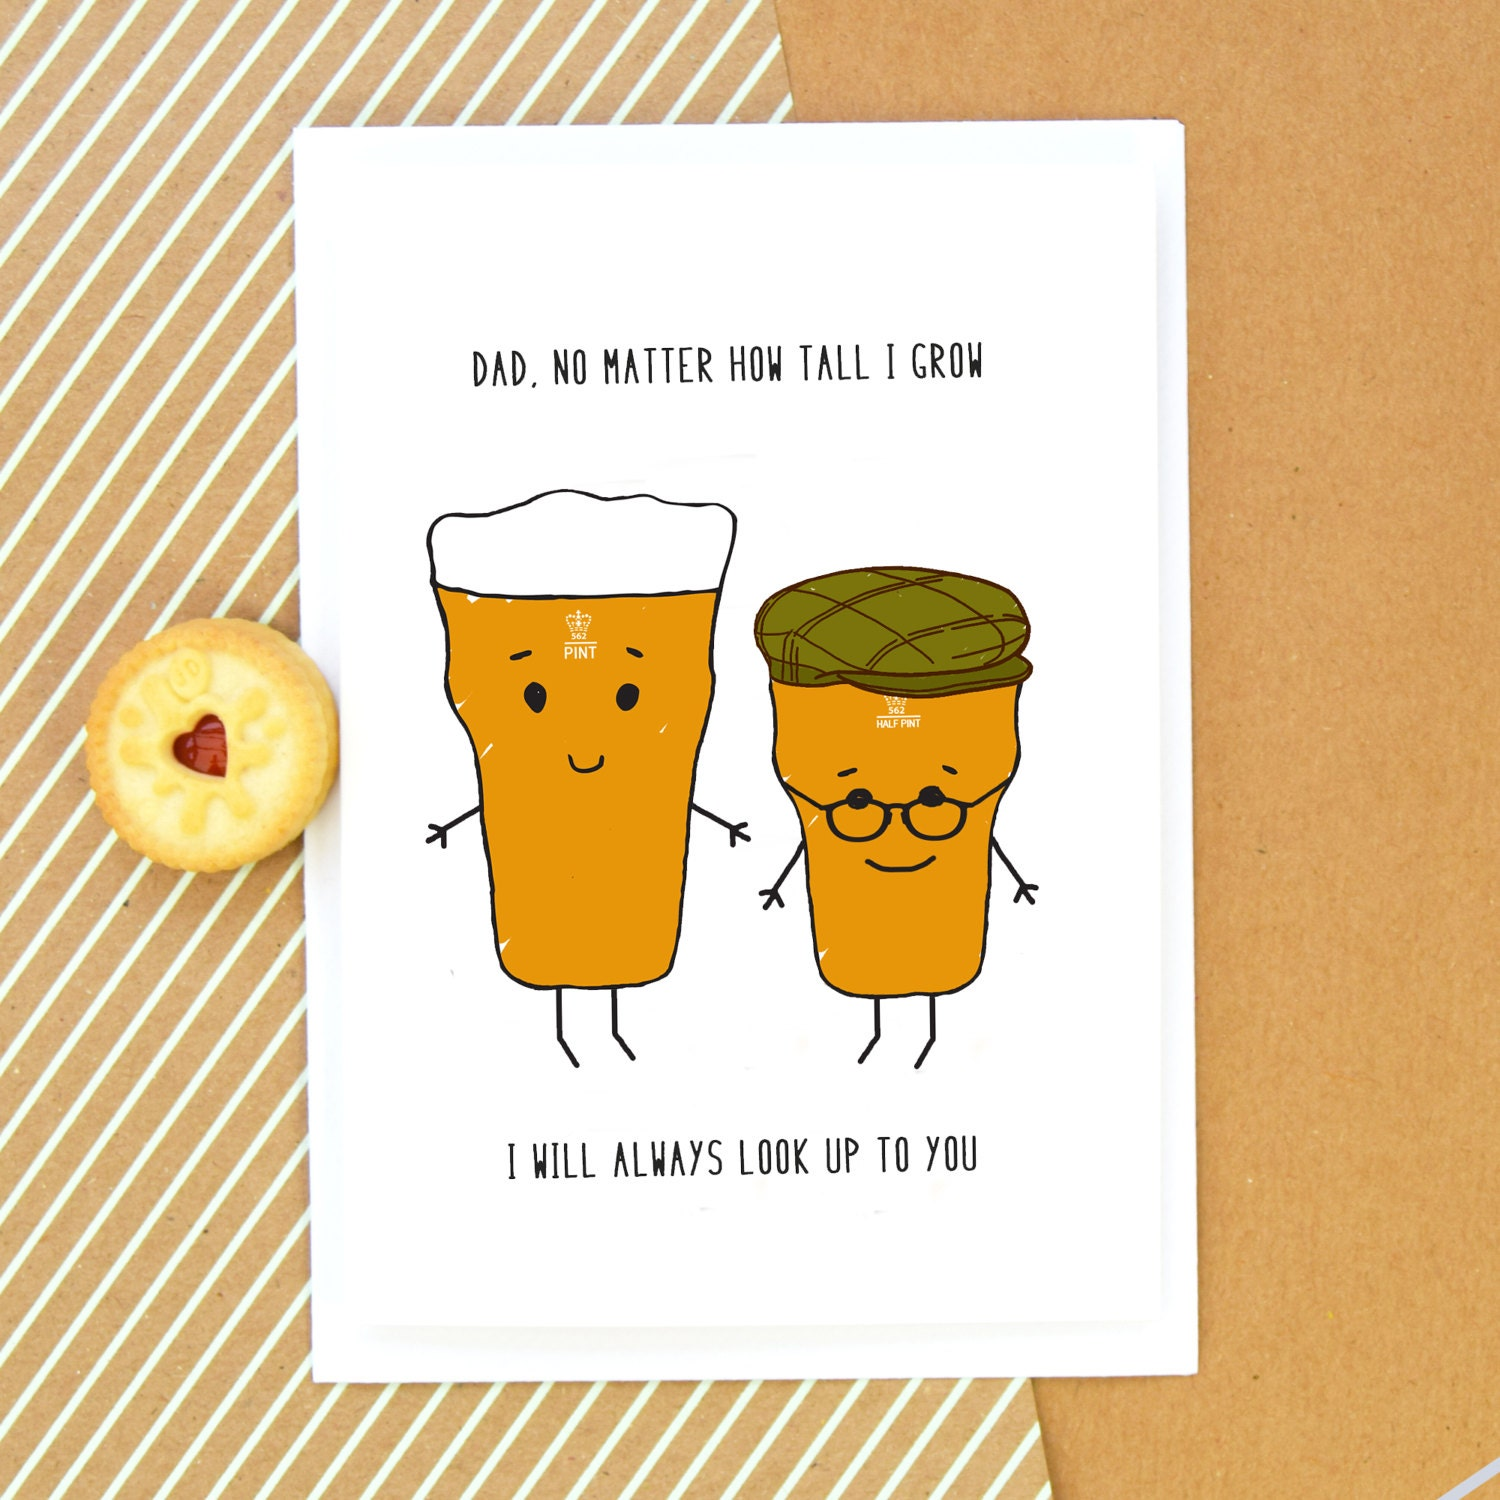 Funny Card For Dad Birthday Fathers Day